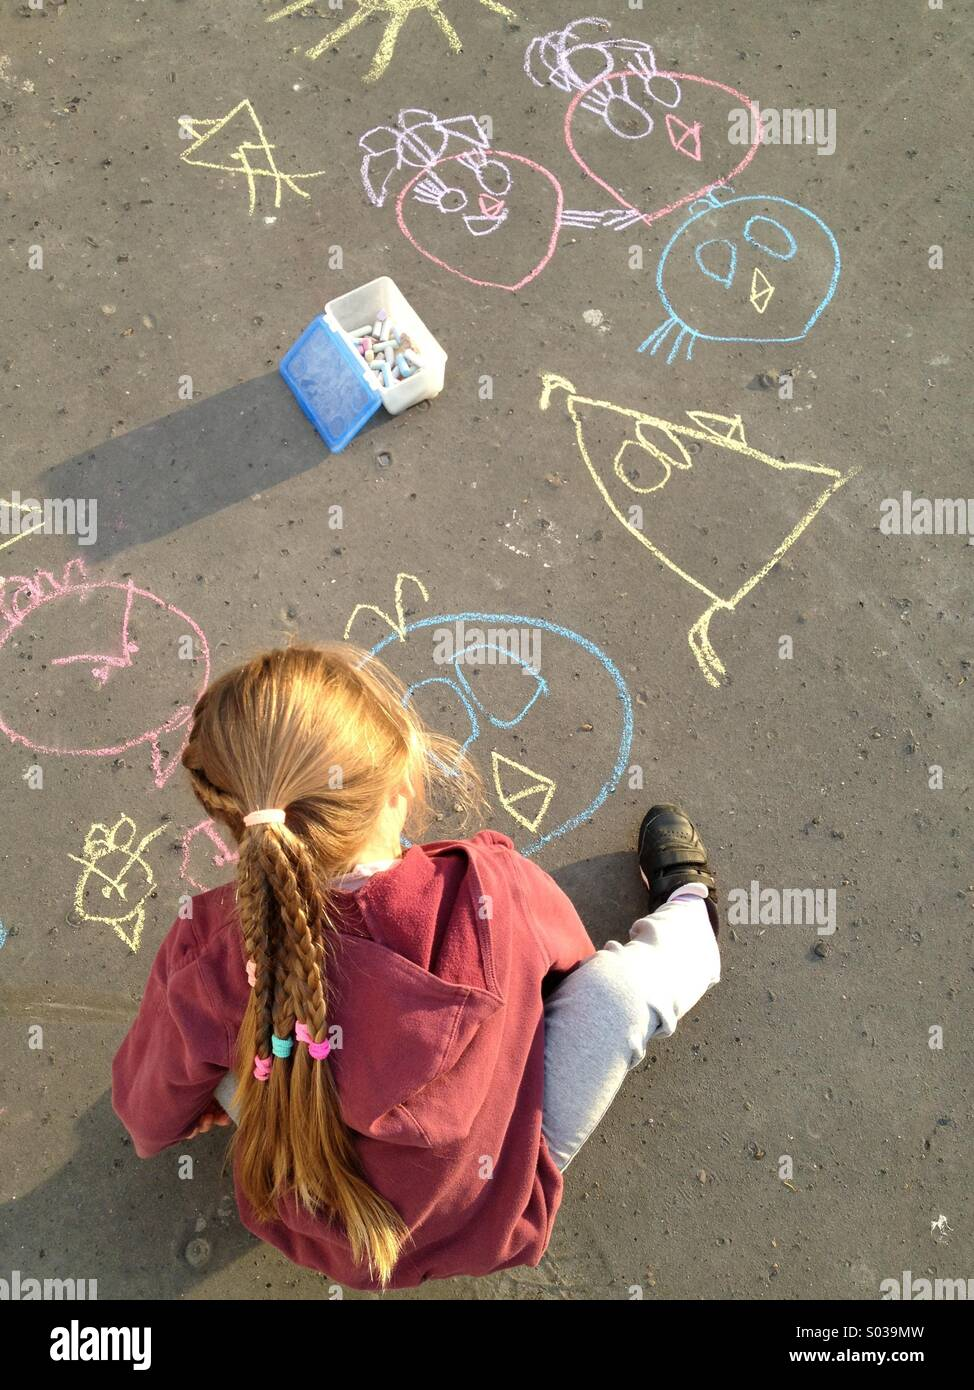 Child drawing with chalk on asphalt - Stock Image